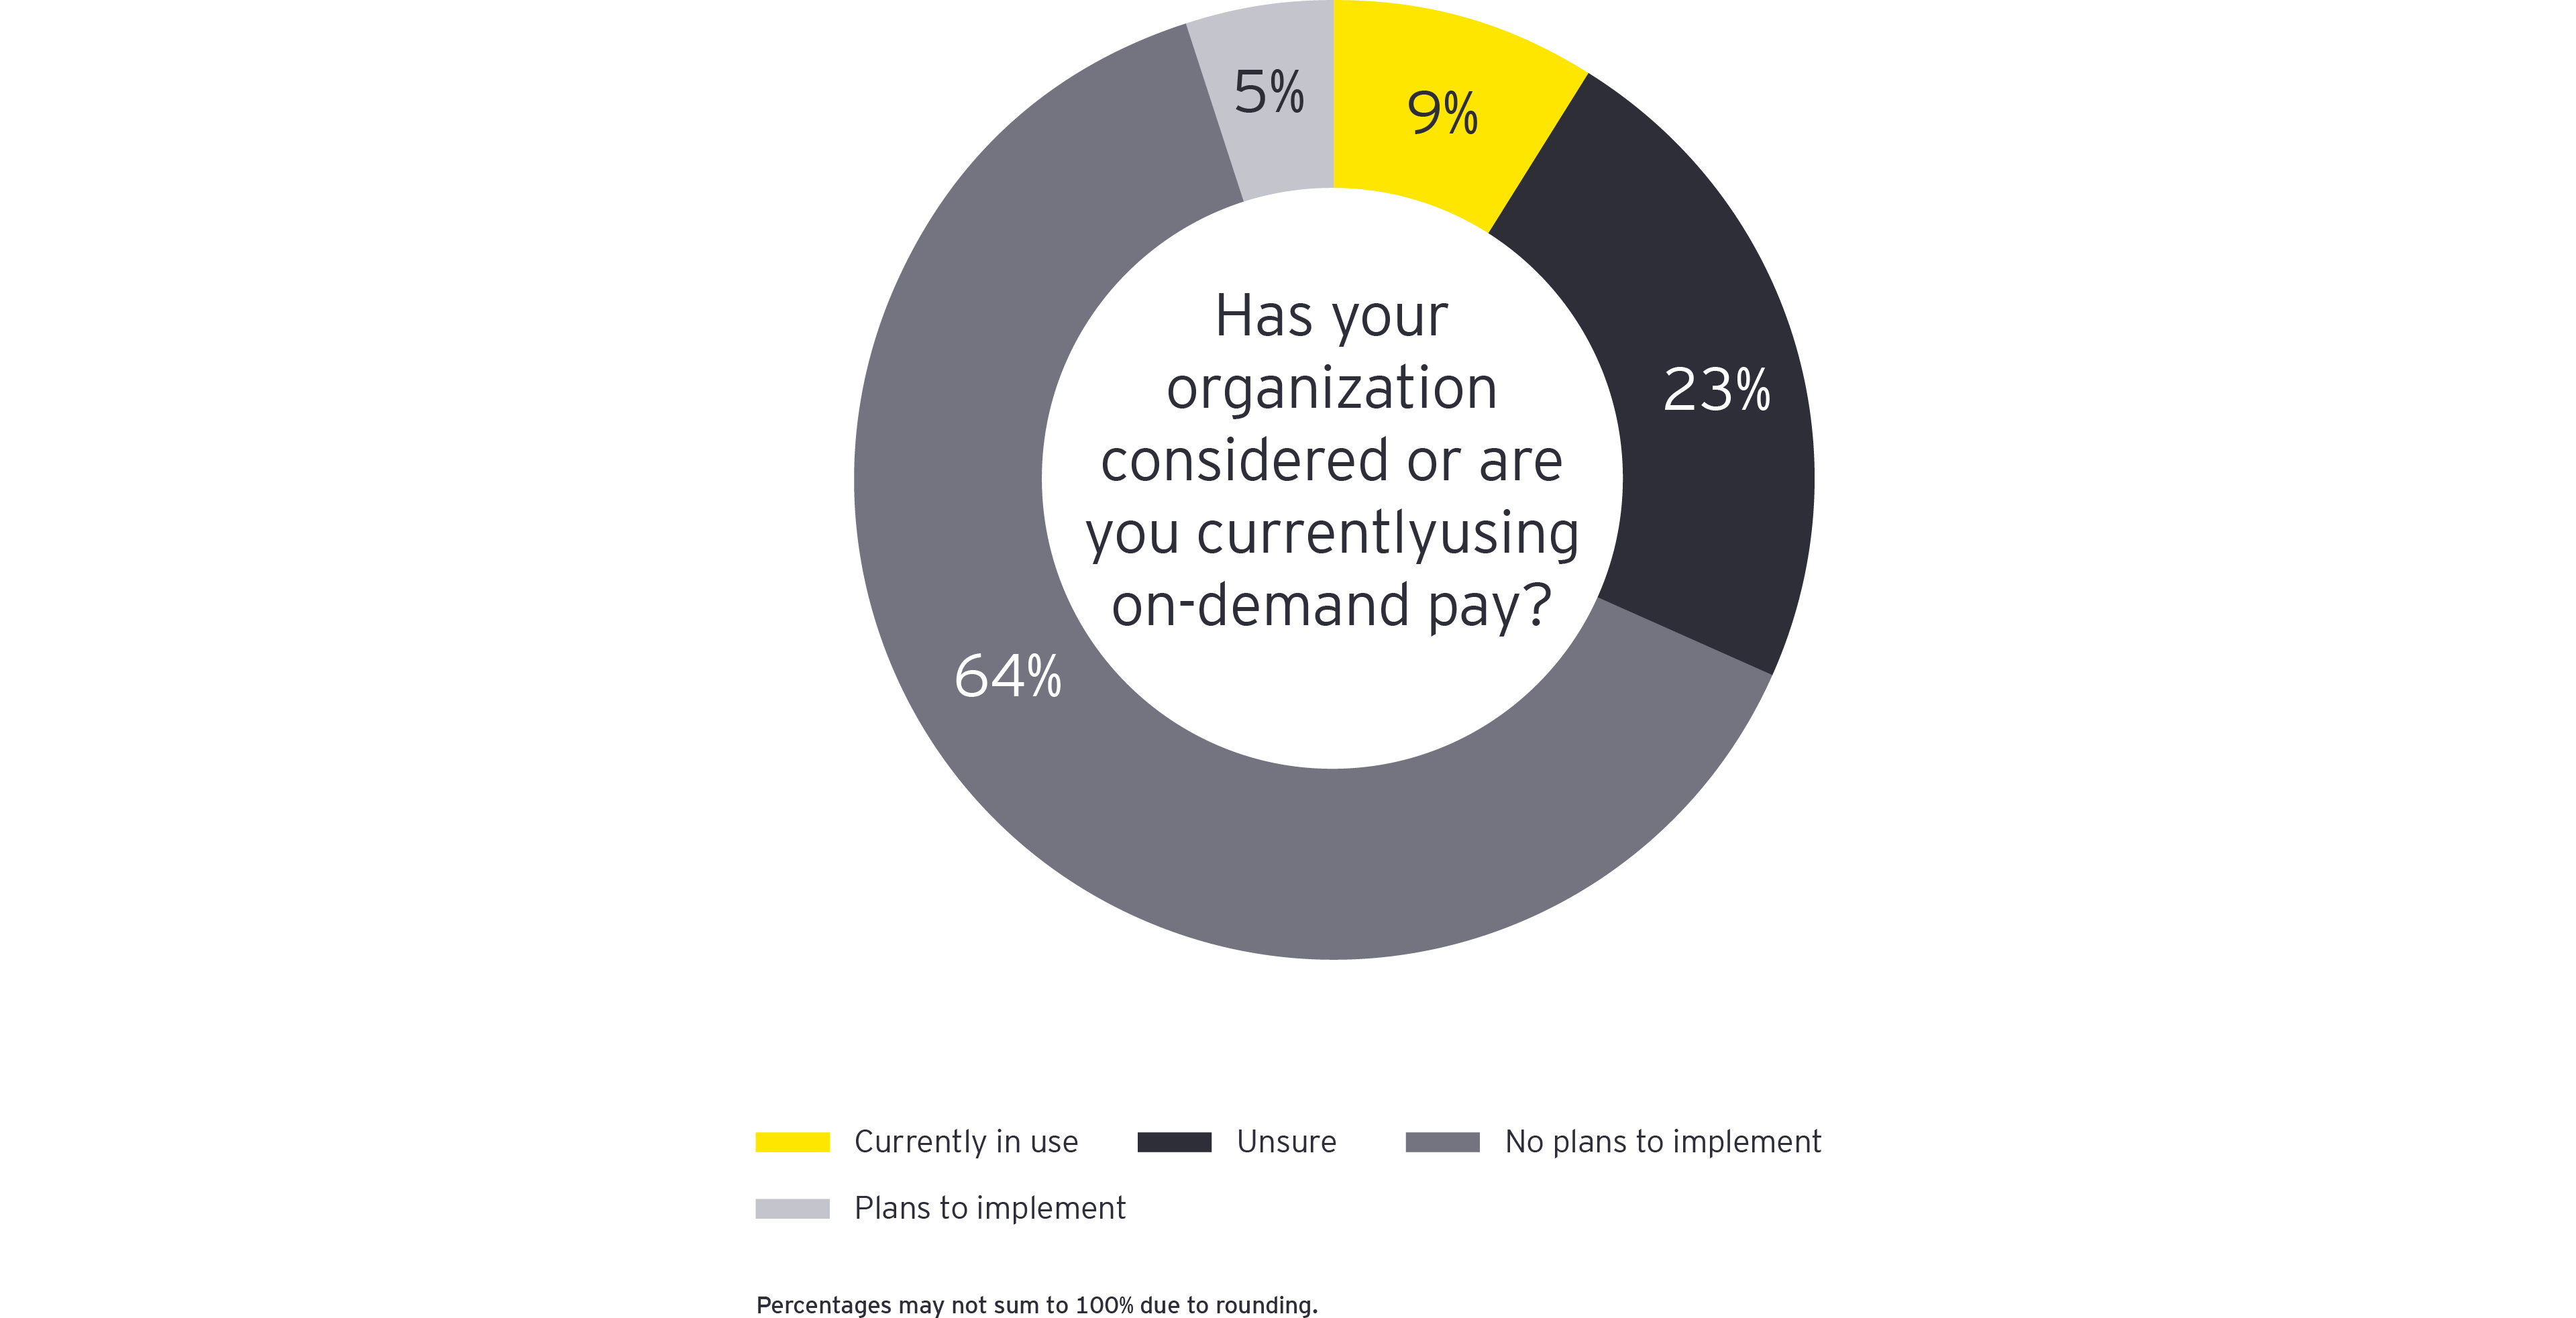 Has your organization considered or are you currently using on demand pay